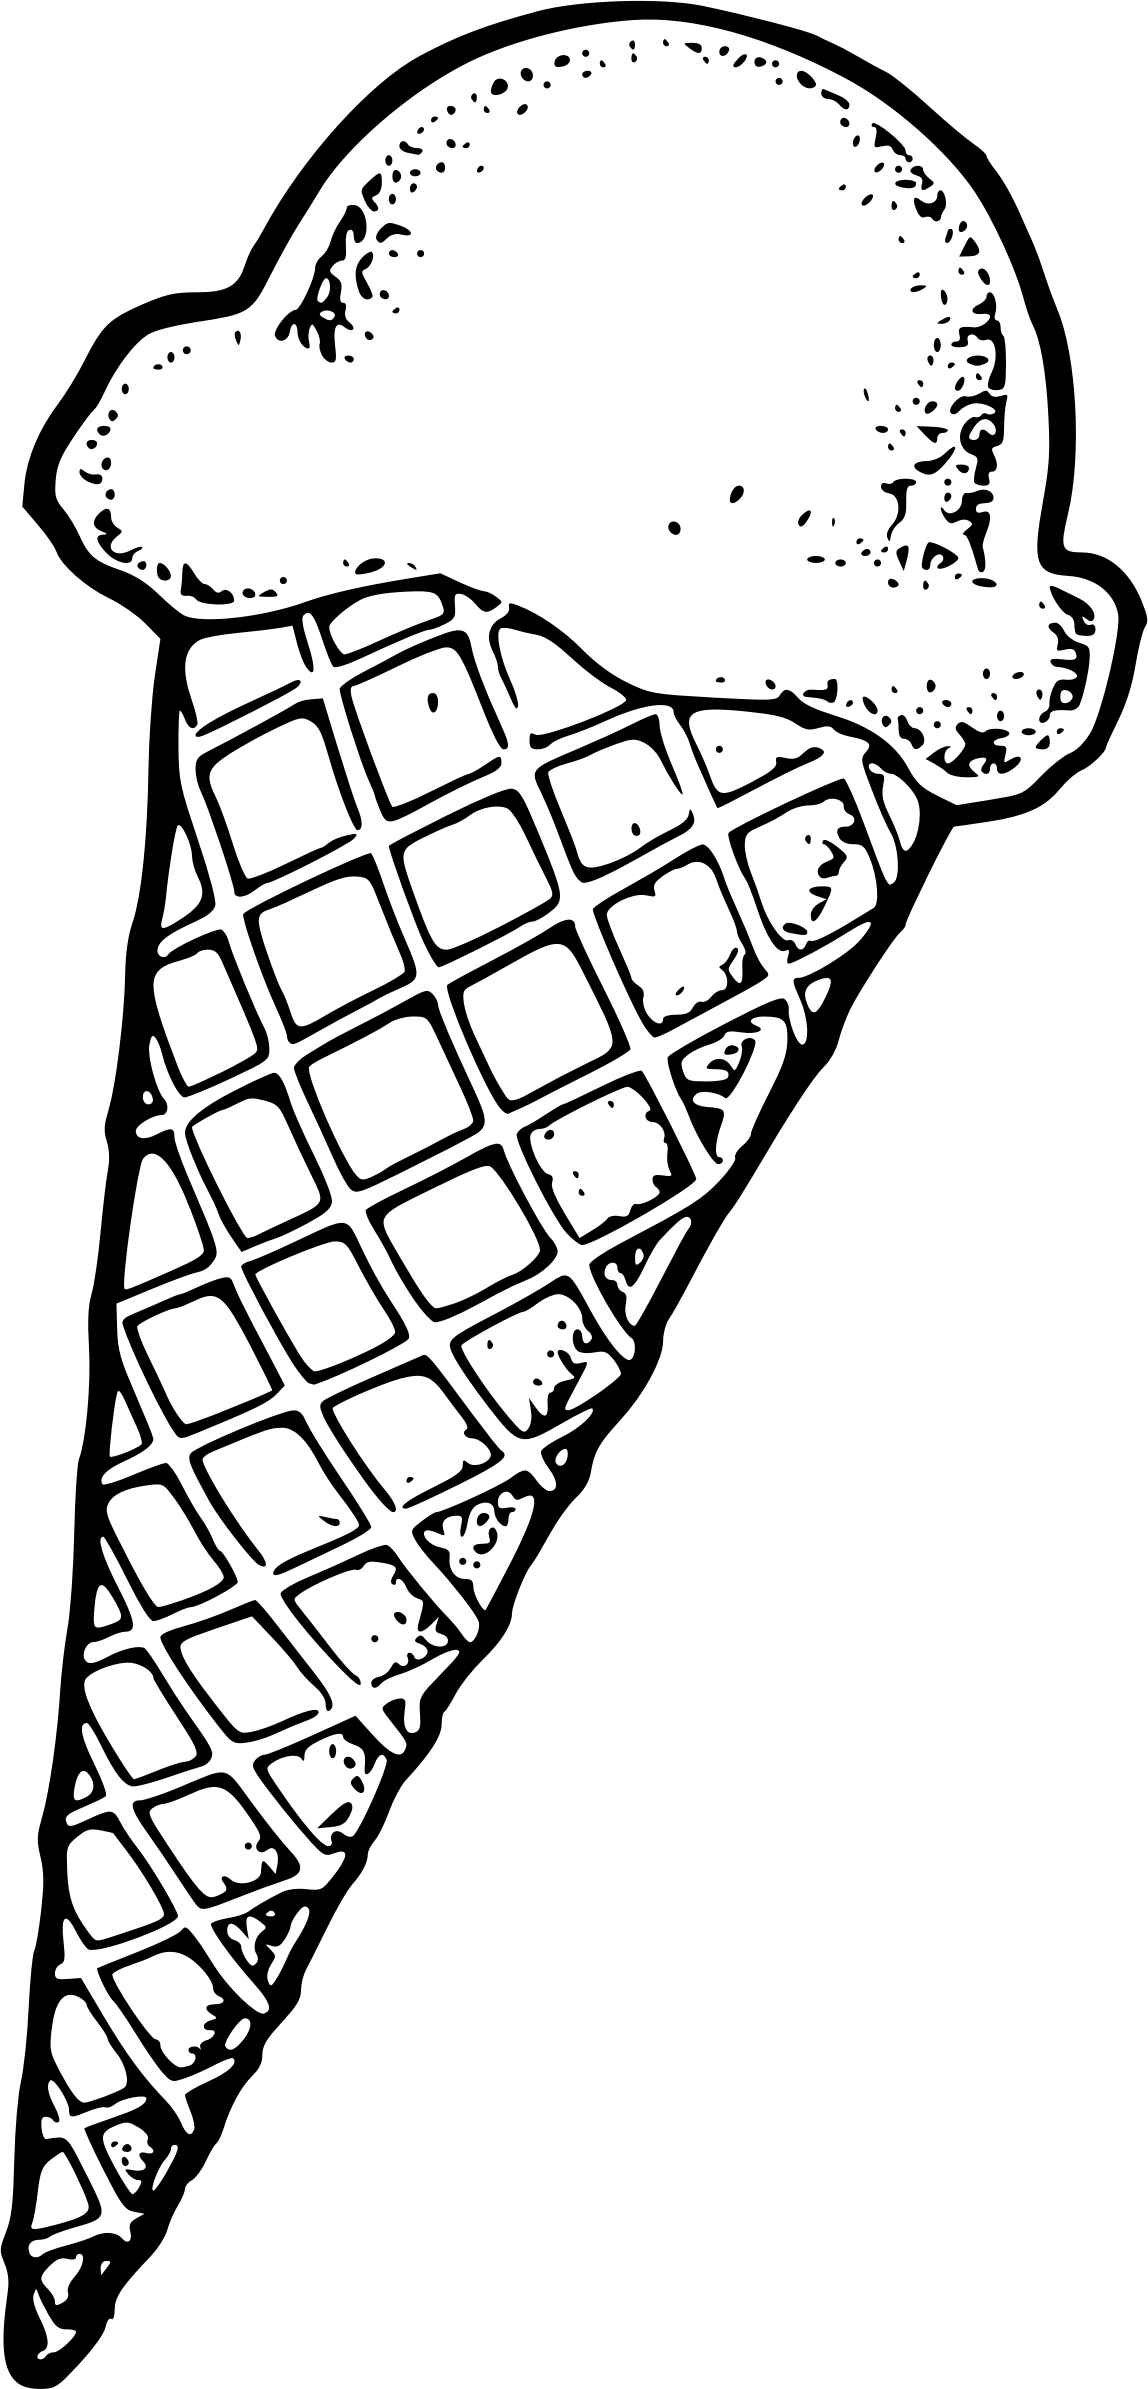 png free download Cone big image png. Ice cream black and white clipart